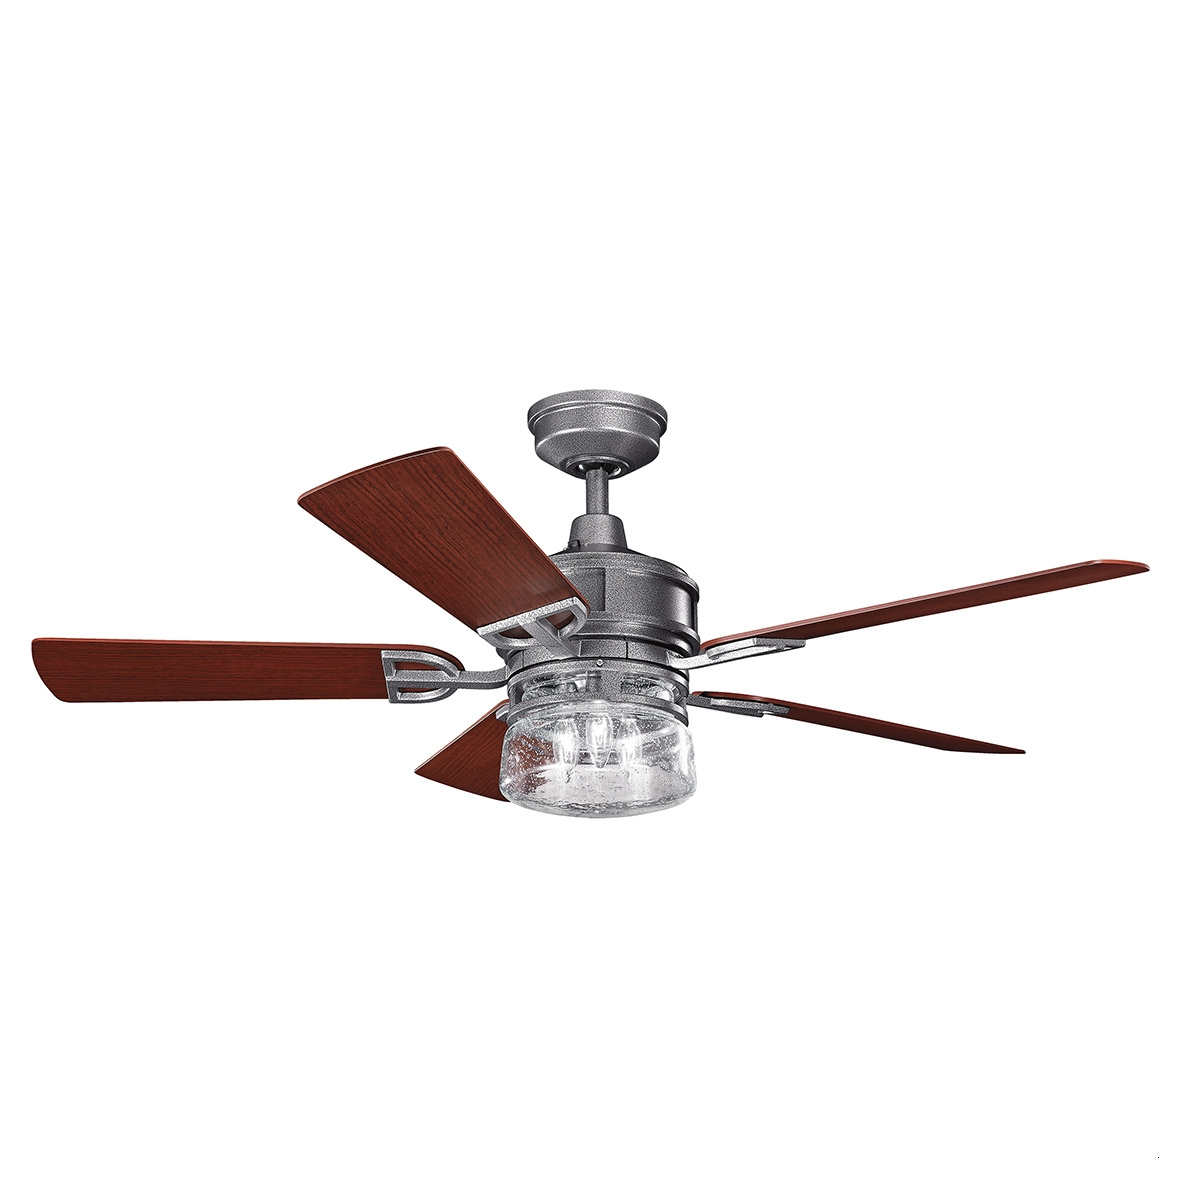 "Most Popular Outdoor Ceiling Fans With Lights Wet Rated Attractive 52"" Lyndon Throughout Wet Rated Outdoor Ceiling Fans With Light (View 8 of 20)"